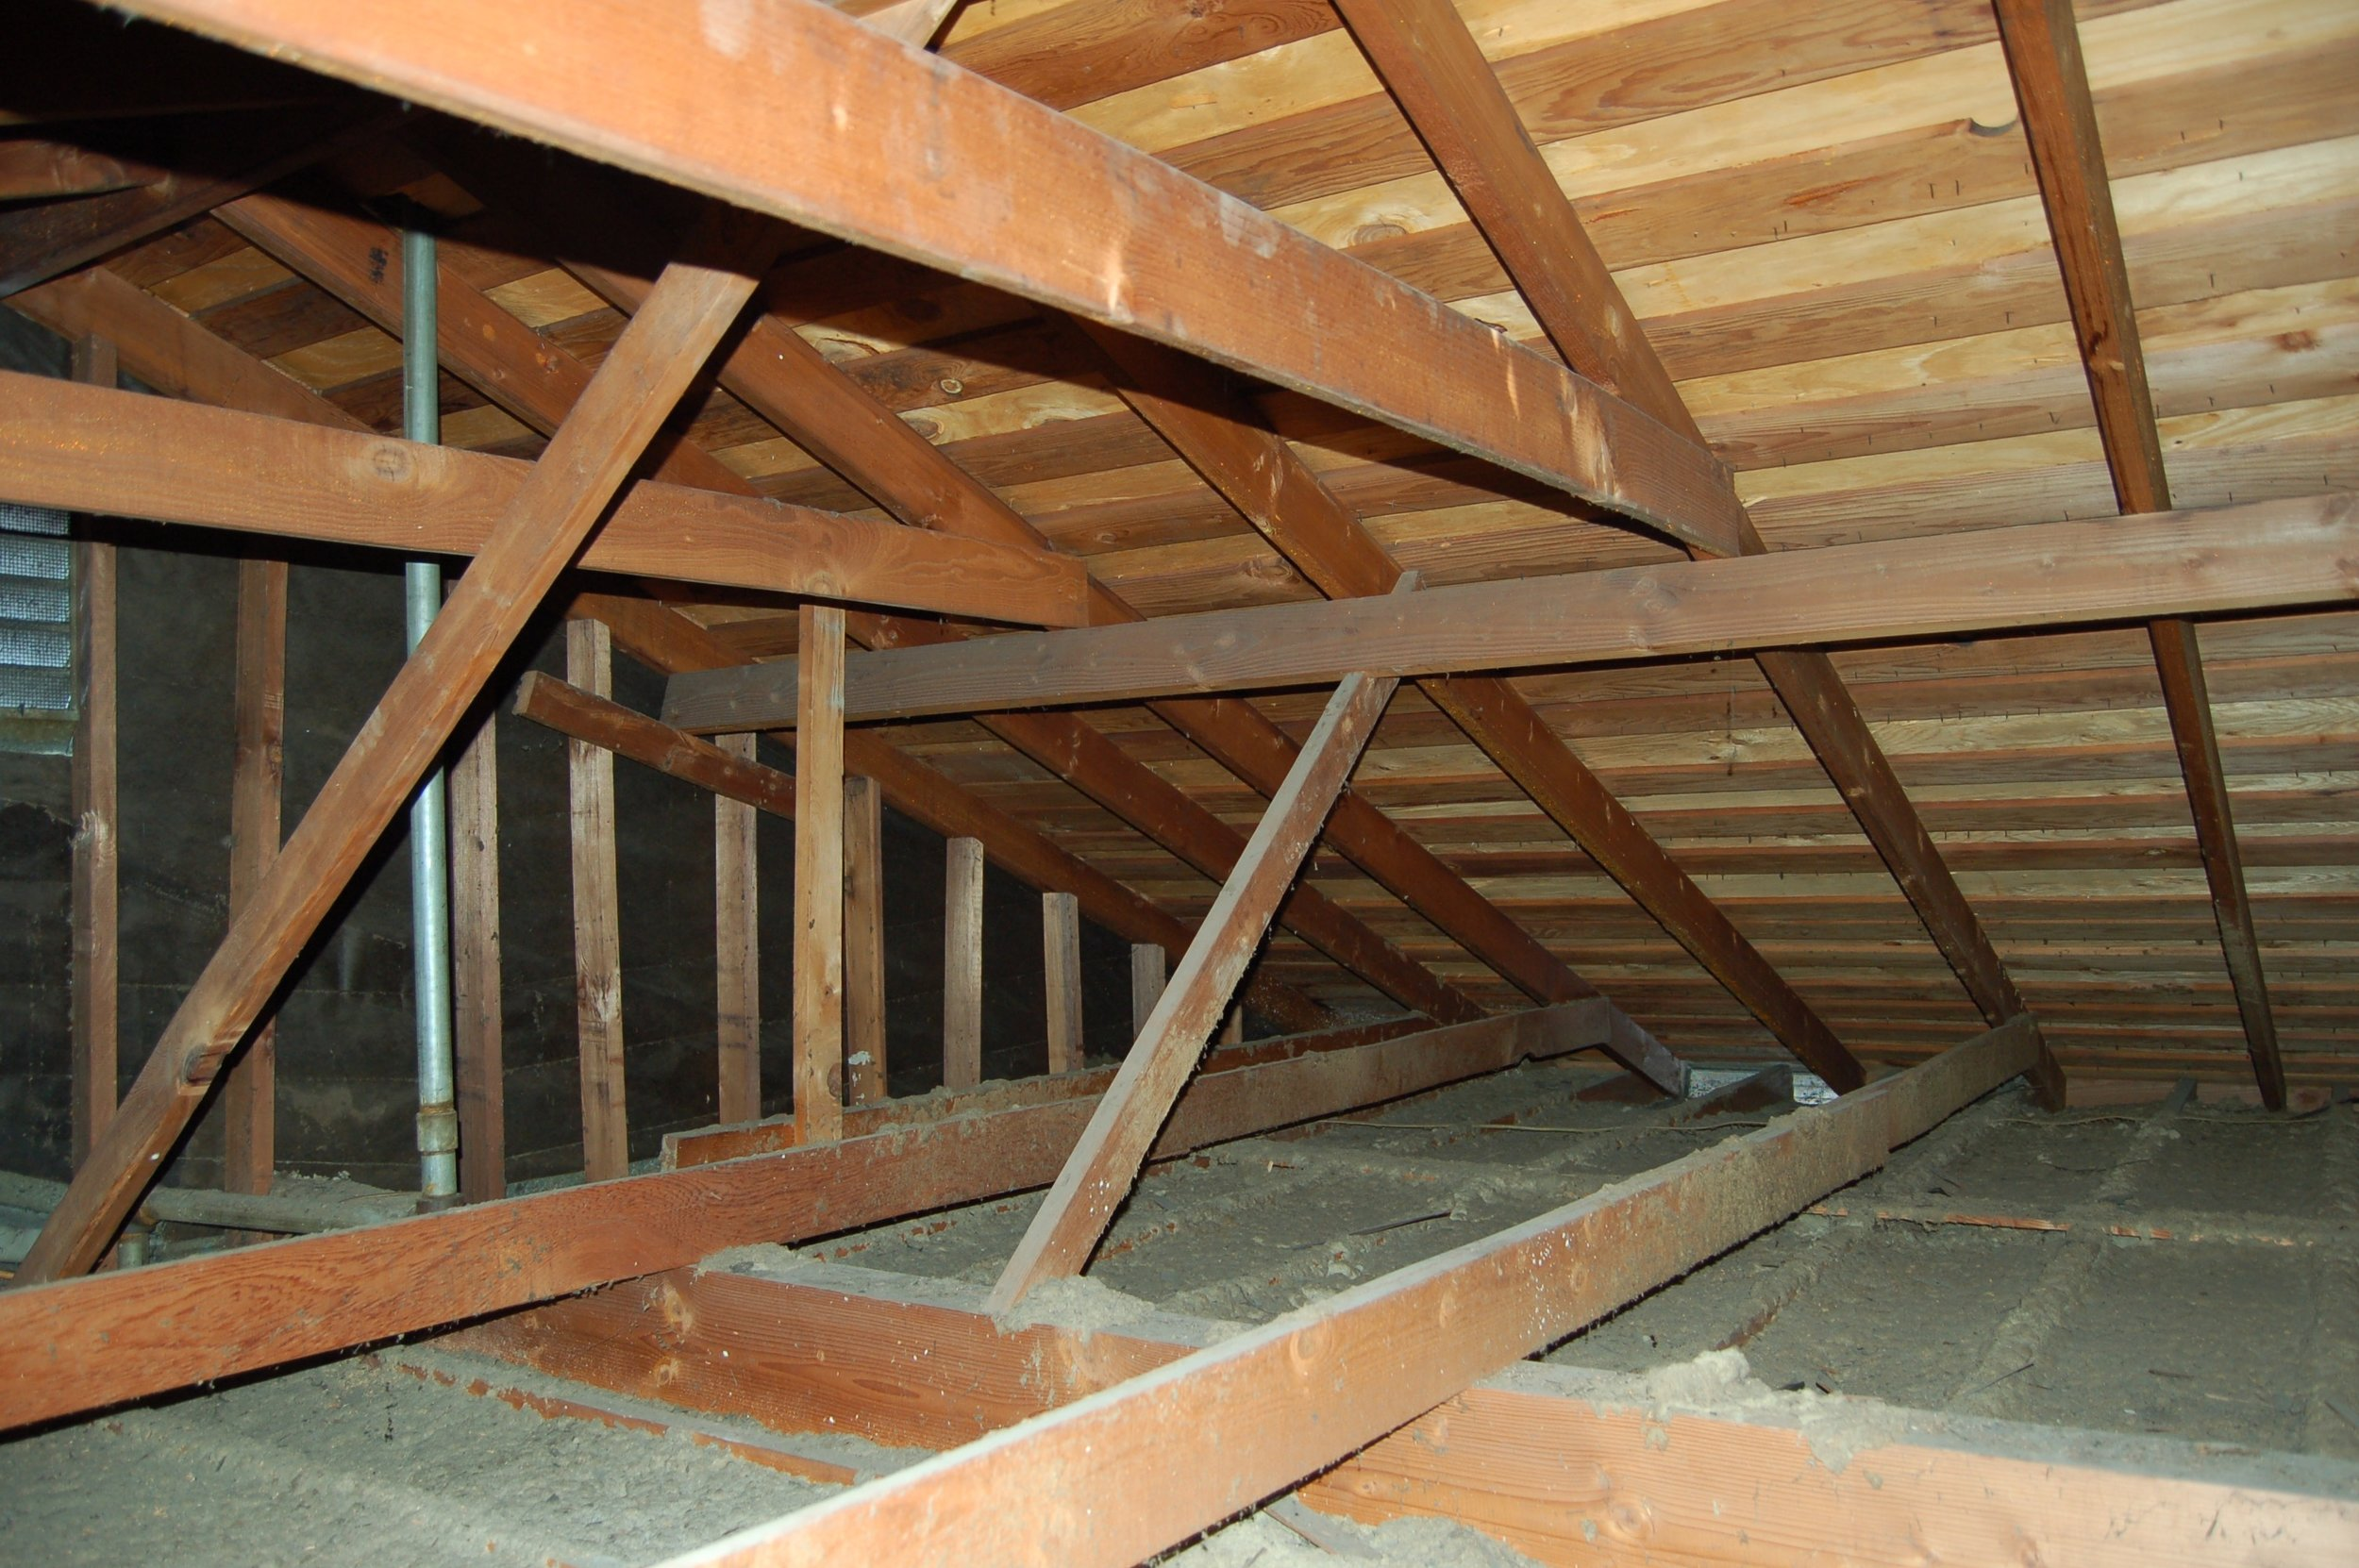 View of the existing attic over the common area, looking northeast. The 6x13 beam runs across the bottom of the photo.